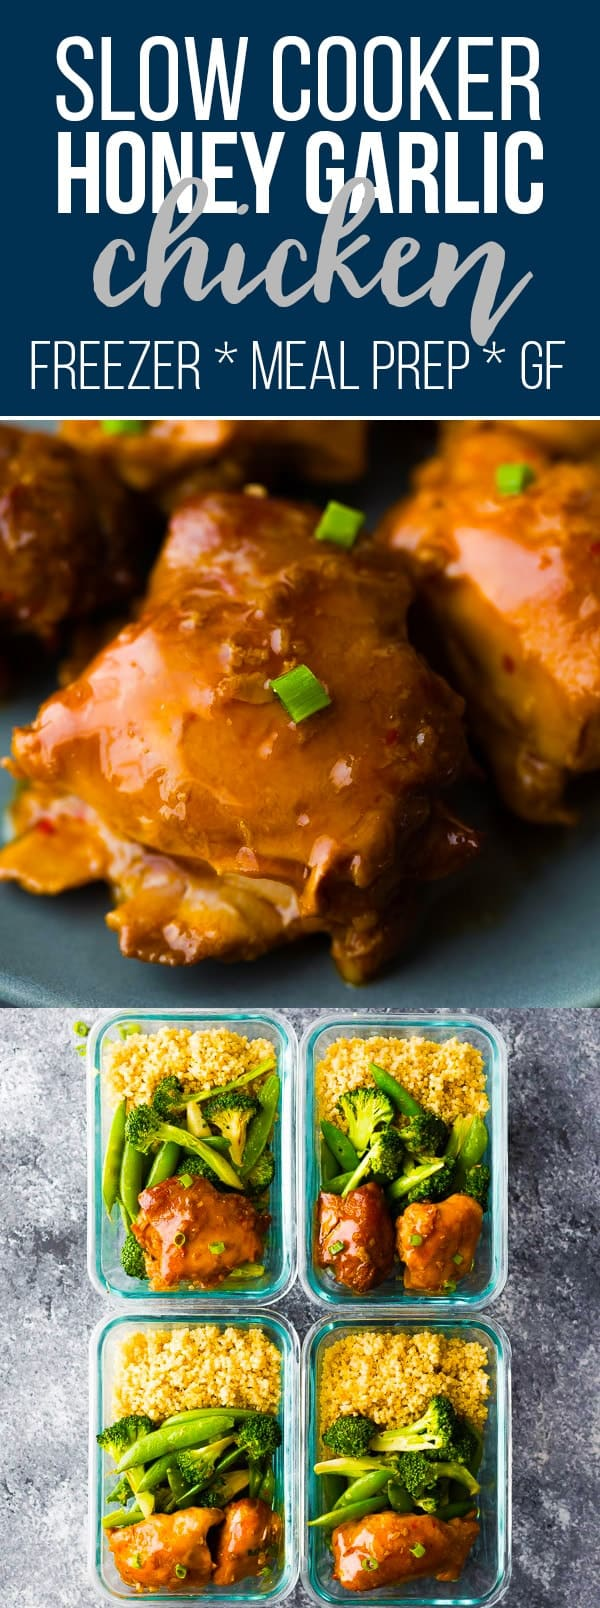 Sticky slow cooker honey garlic chicken thighs are simple to throw together and have a deliciously sticky sweet and savory sauce that is perfect for spooning over rice and vegetables. Perfect as a weeknight dinner or meal prep recipe. Crock pot honey garlic chicken, paleo honey garlic chicken, gluten-free honey garlic chicken, meal prep honey garlic chicken #sweetpeasandsaffron #mealprep #slowcooker #freezerslowcooker #crockpot #freezermeal #chicken #dinner #lunch